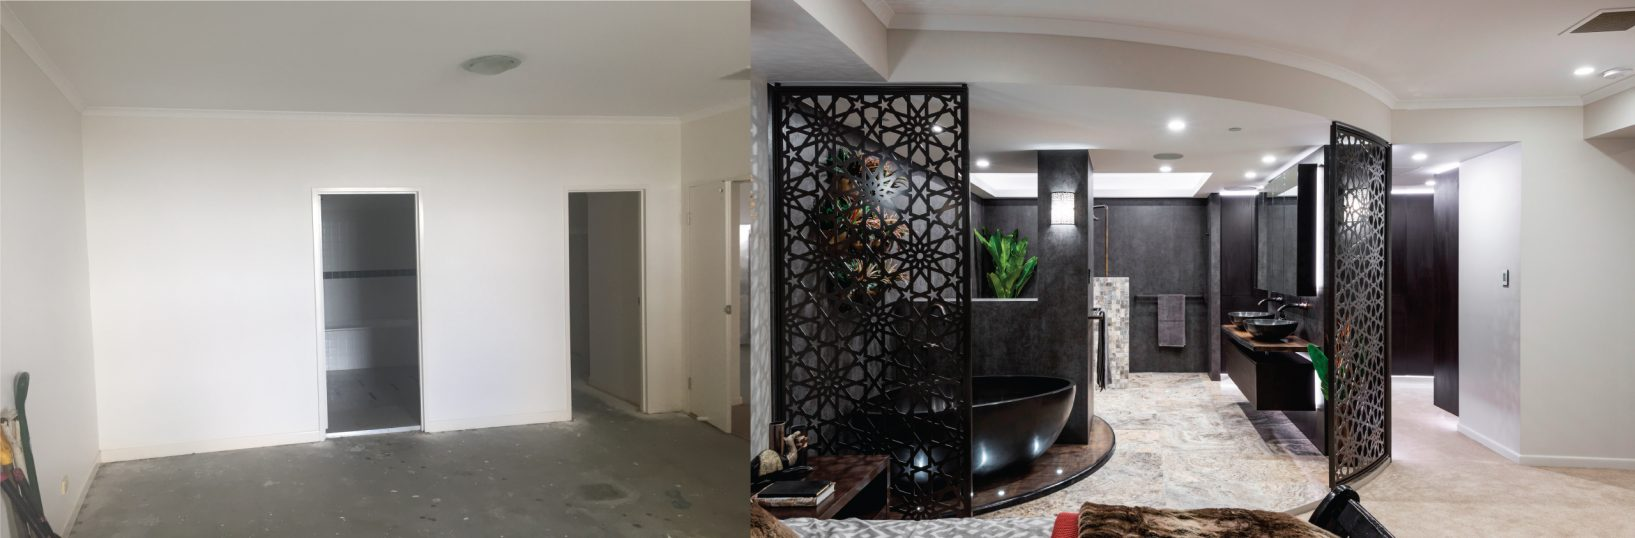 Brisbane CBD Penthouse - Master Suite Bathroom Renovation Before-and-After